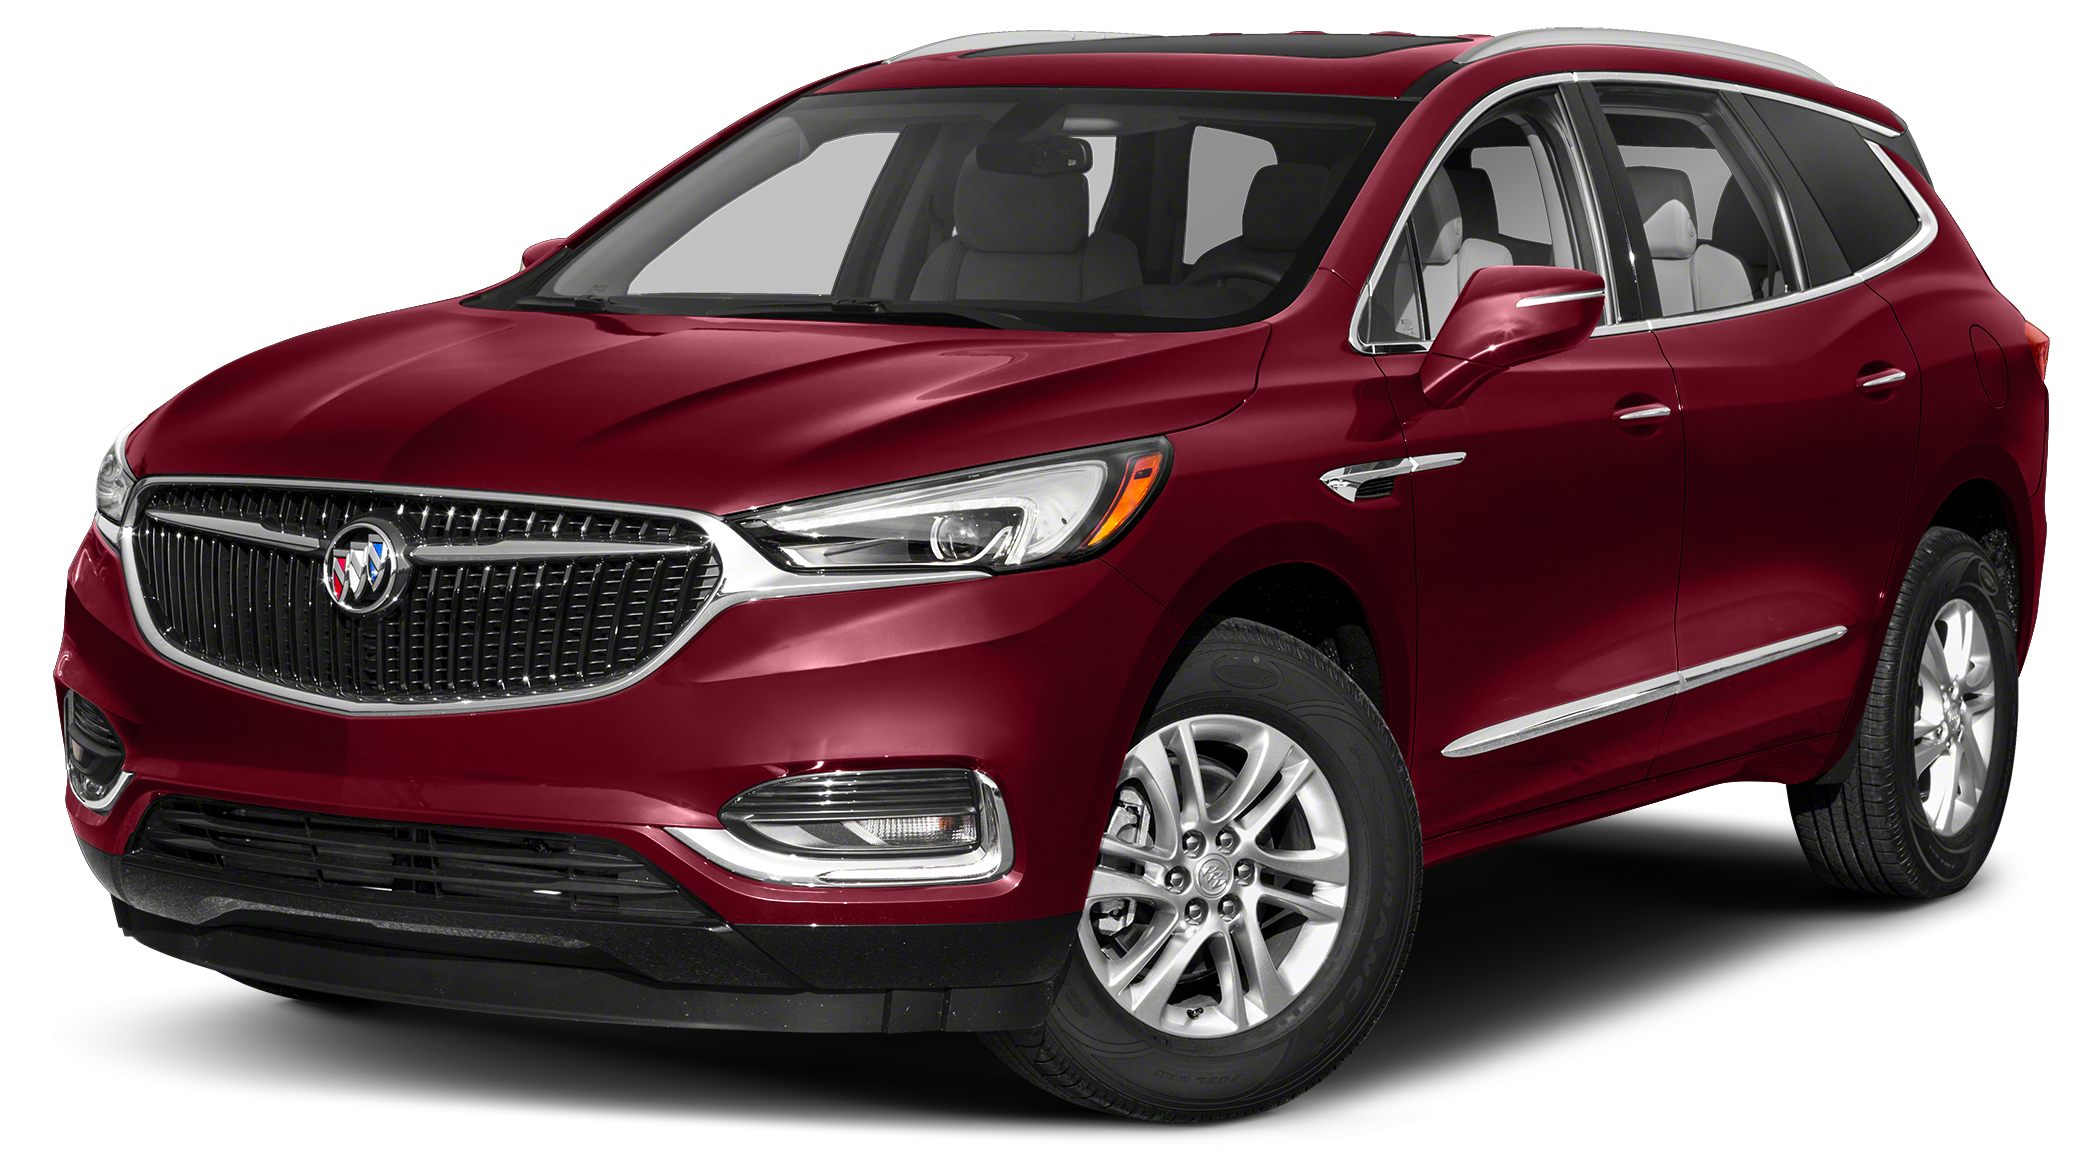 2018 Buick Enclave Essence Boasts 26 Highway MPG and 18 City MPG Miles 5Color Red Quartz Tintc